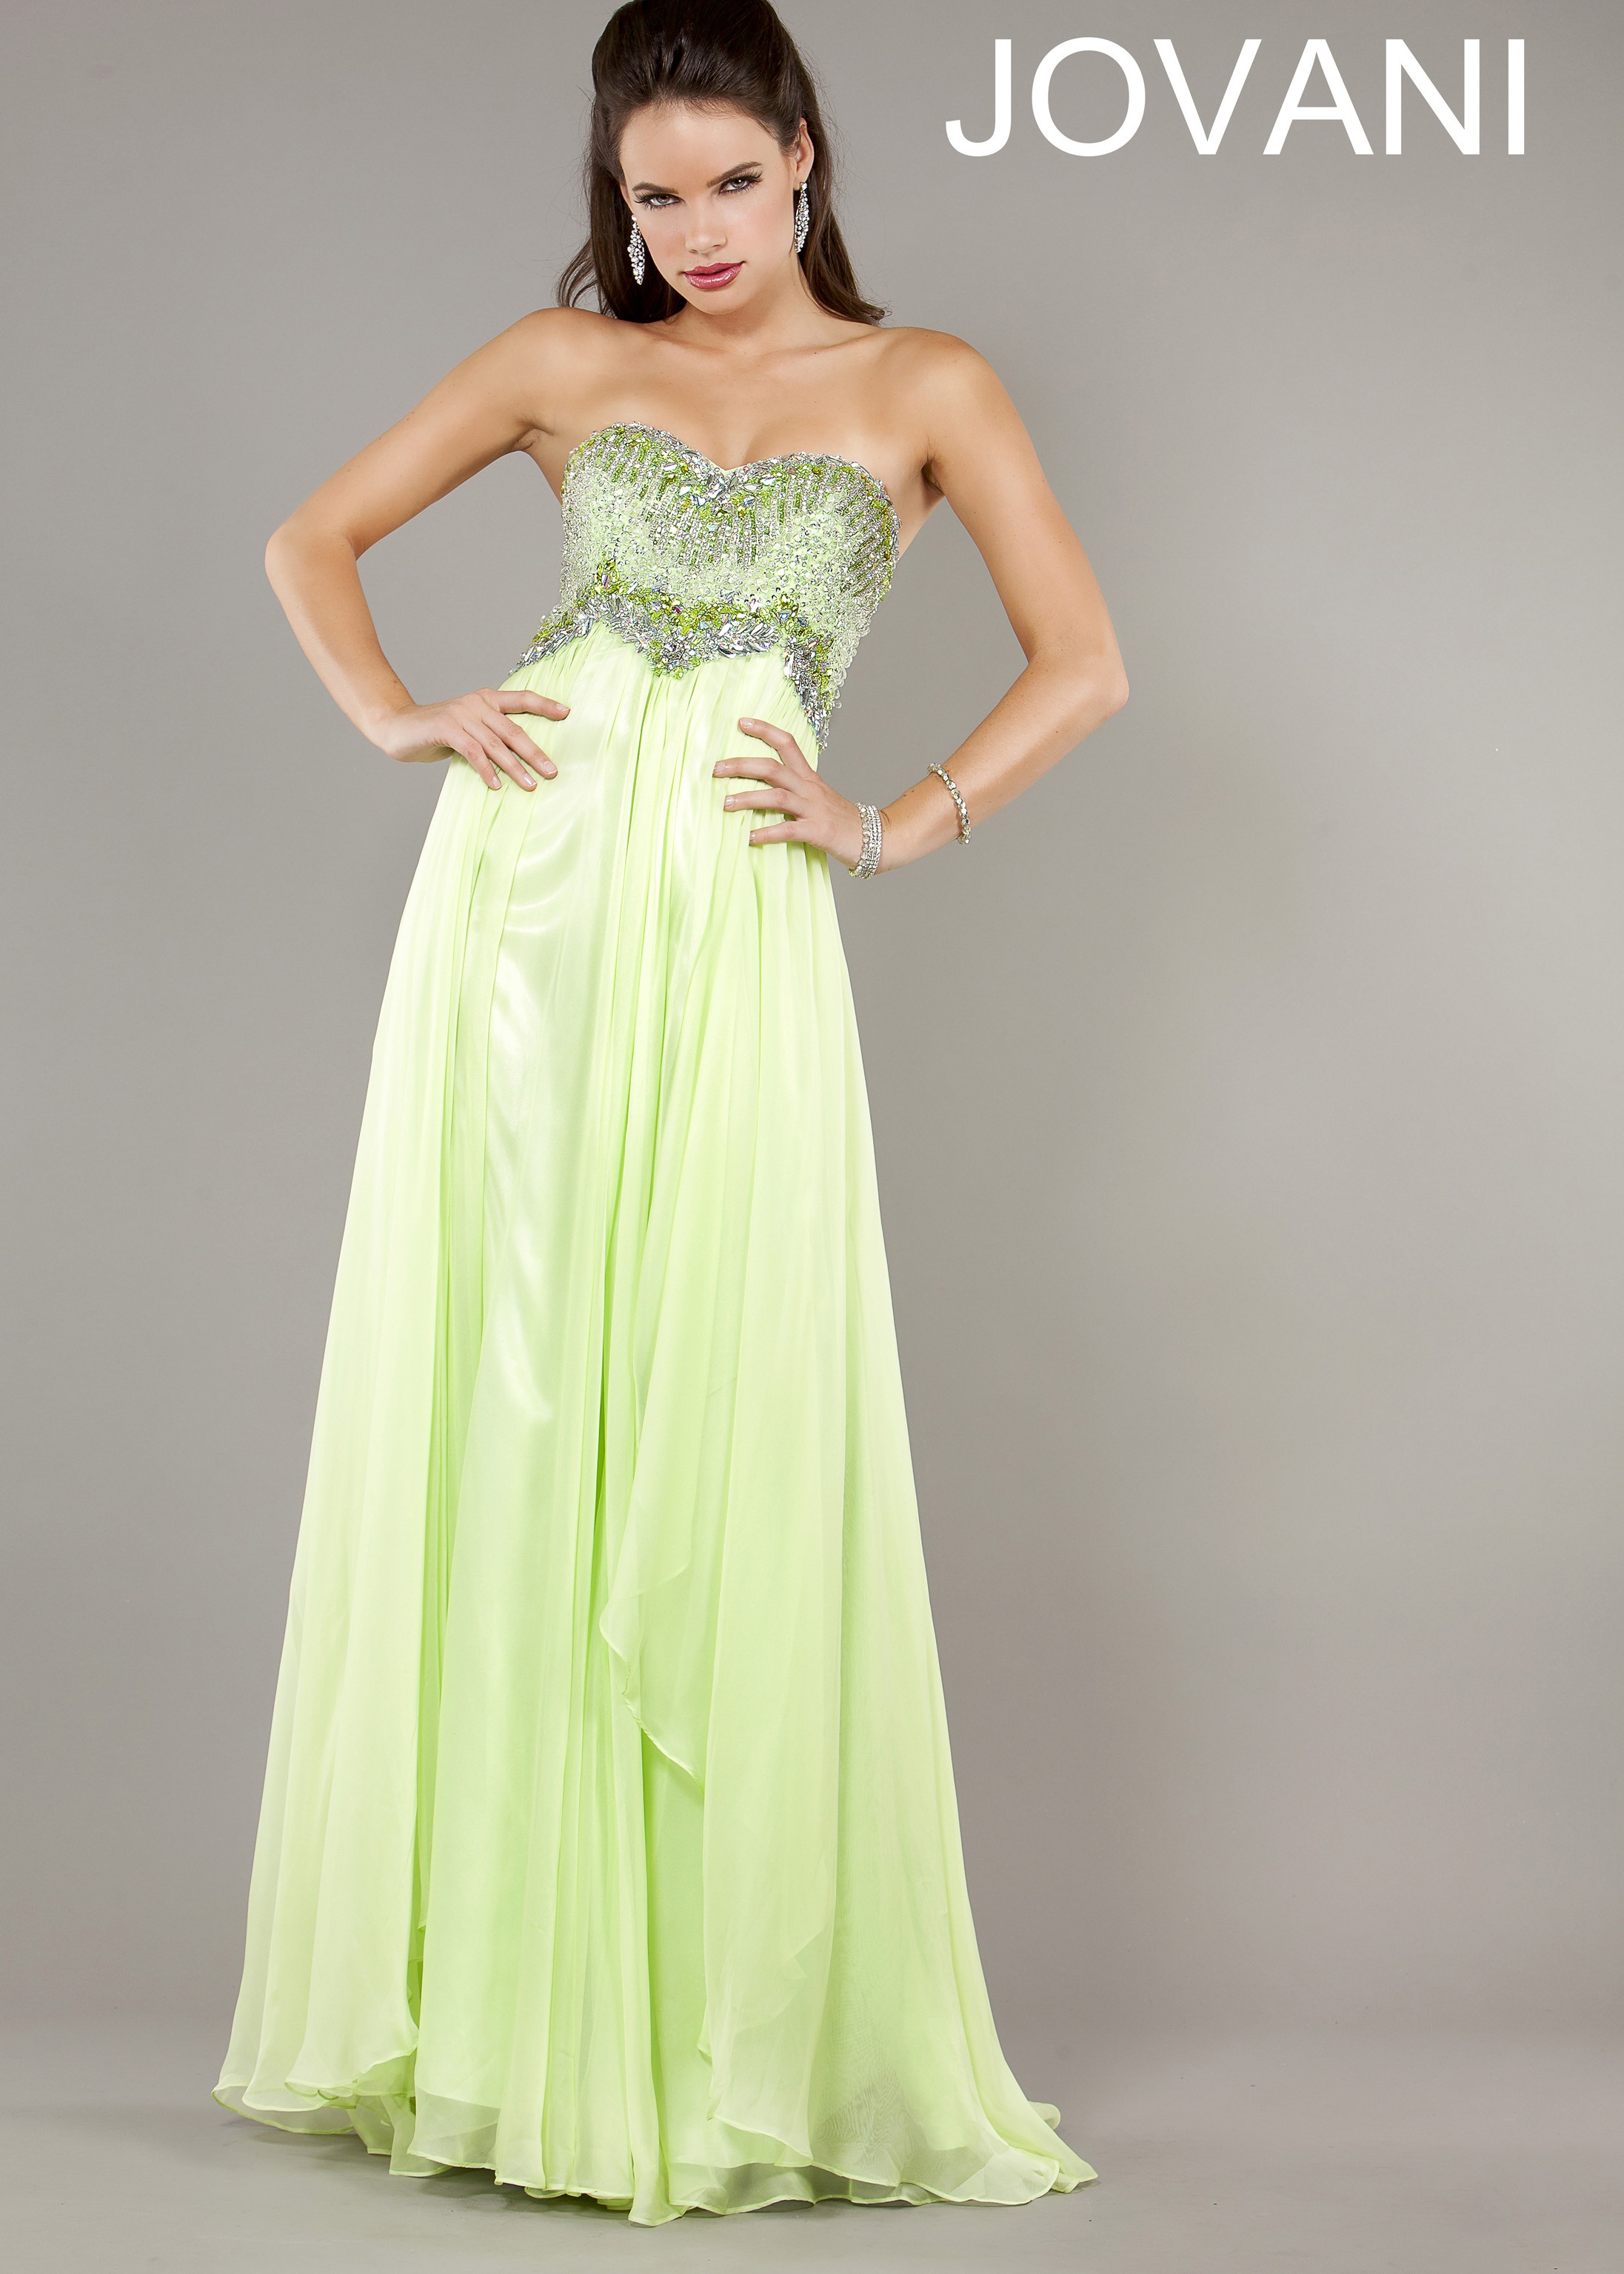 a7c5c4820ee Jovani 2013 Prom Dresses - Gomes Weine AG